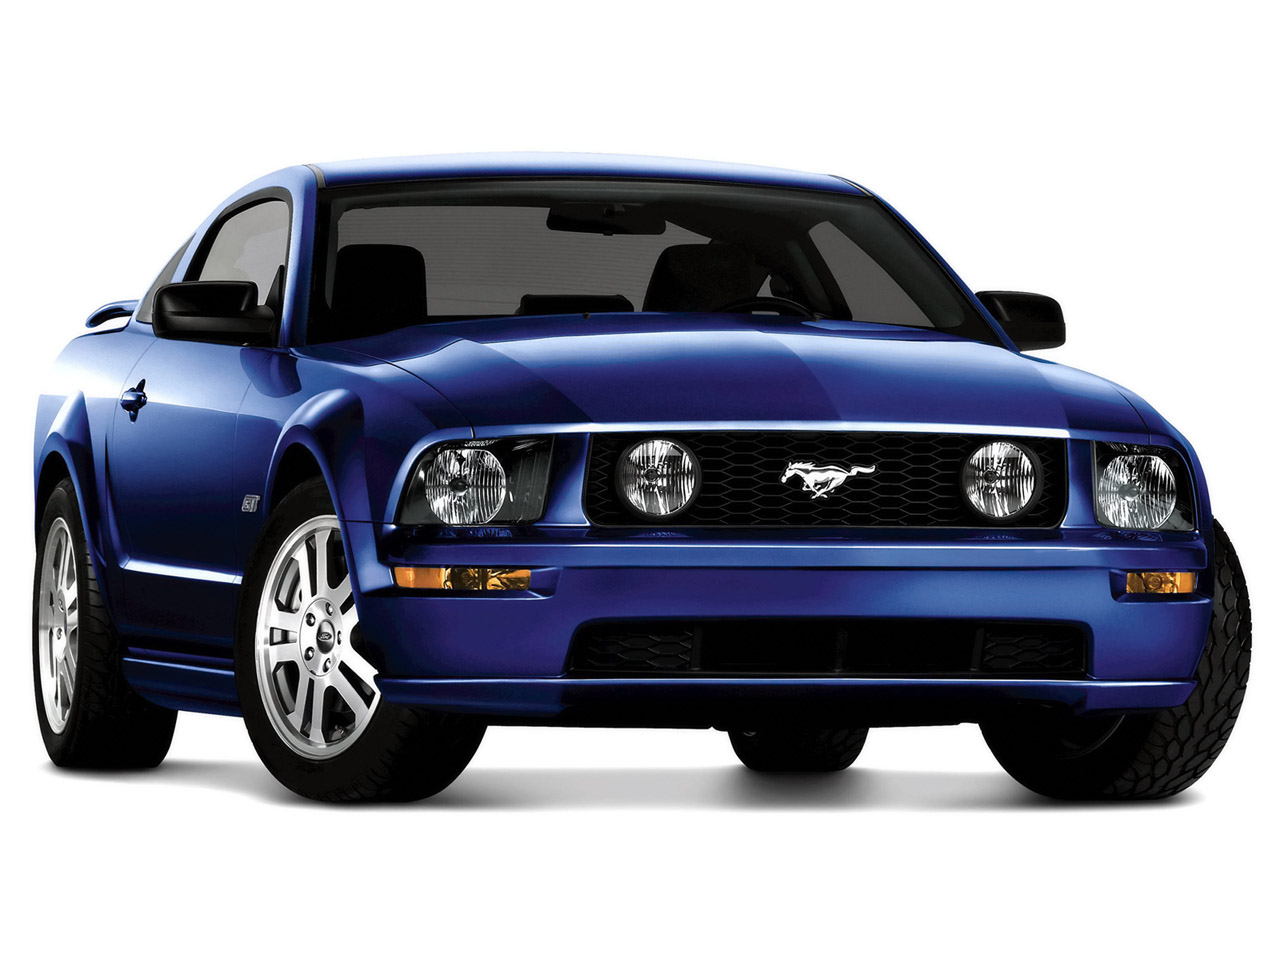 2005 Ford Mustang #5